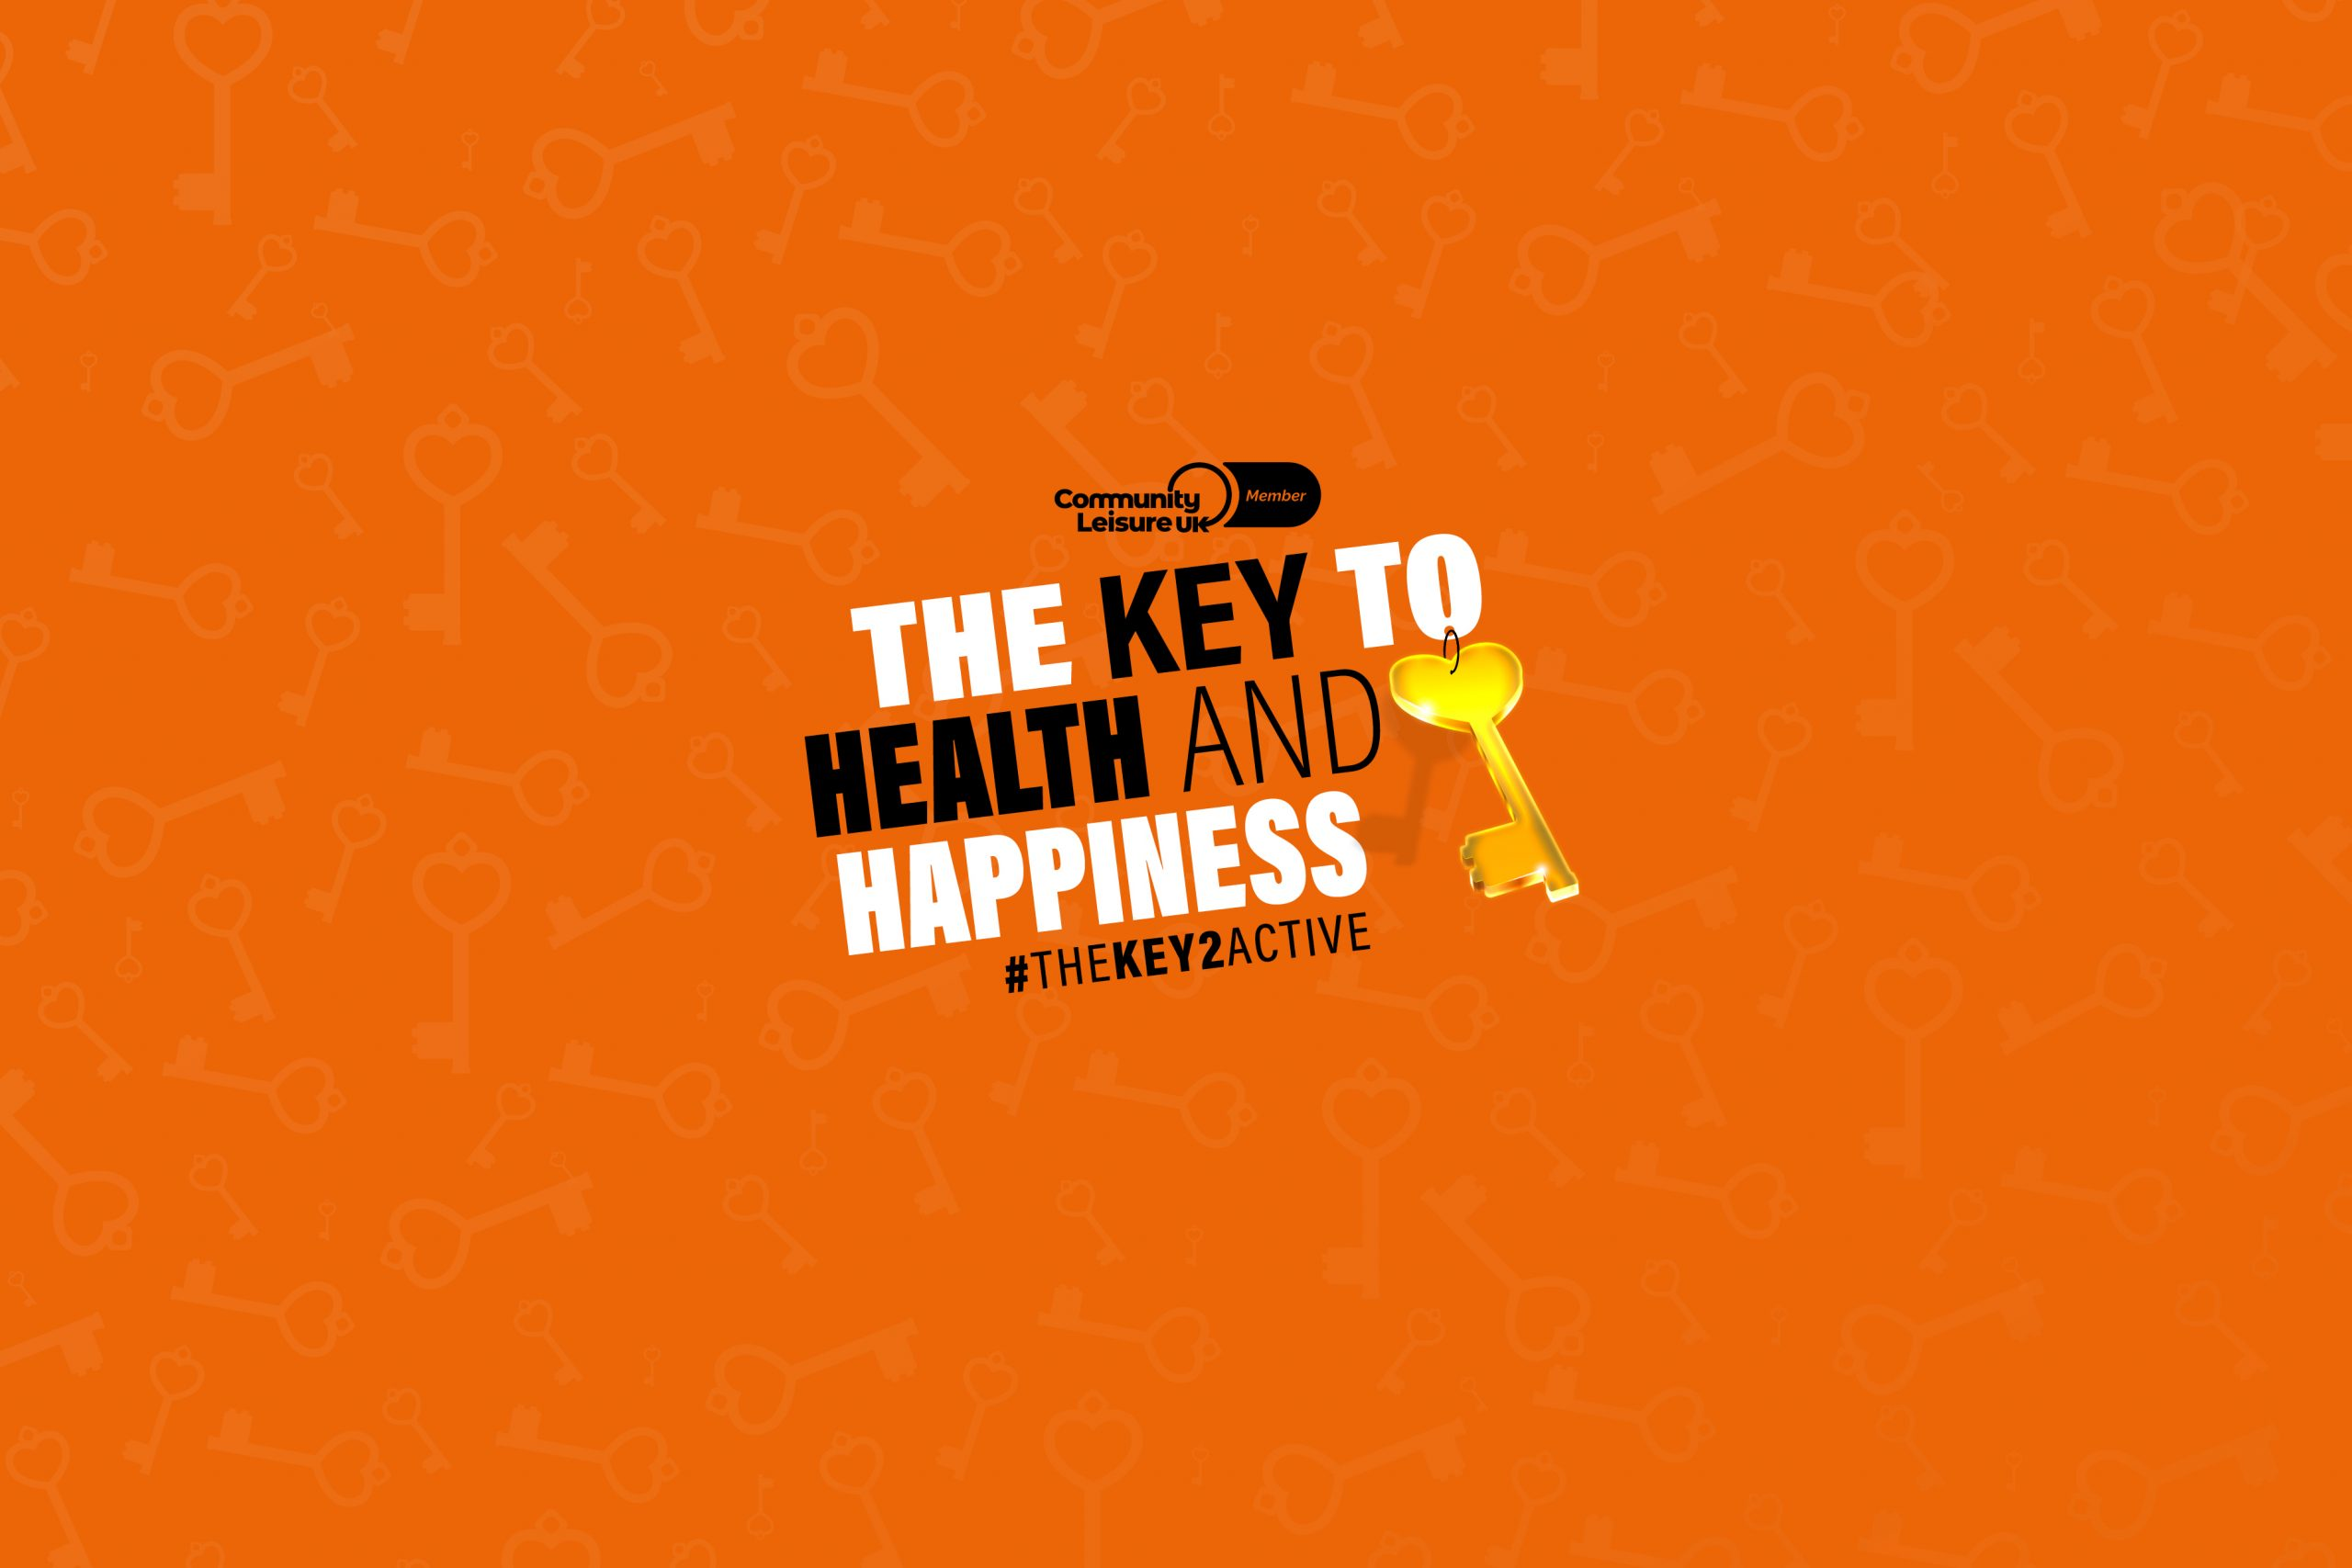 The key to health and happiness